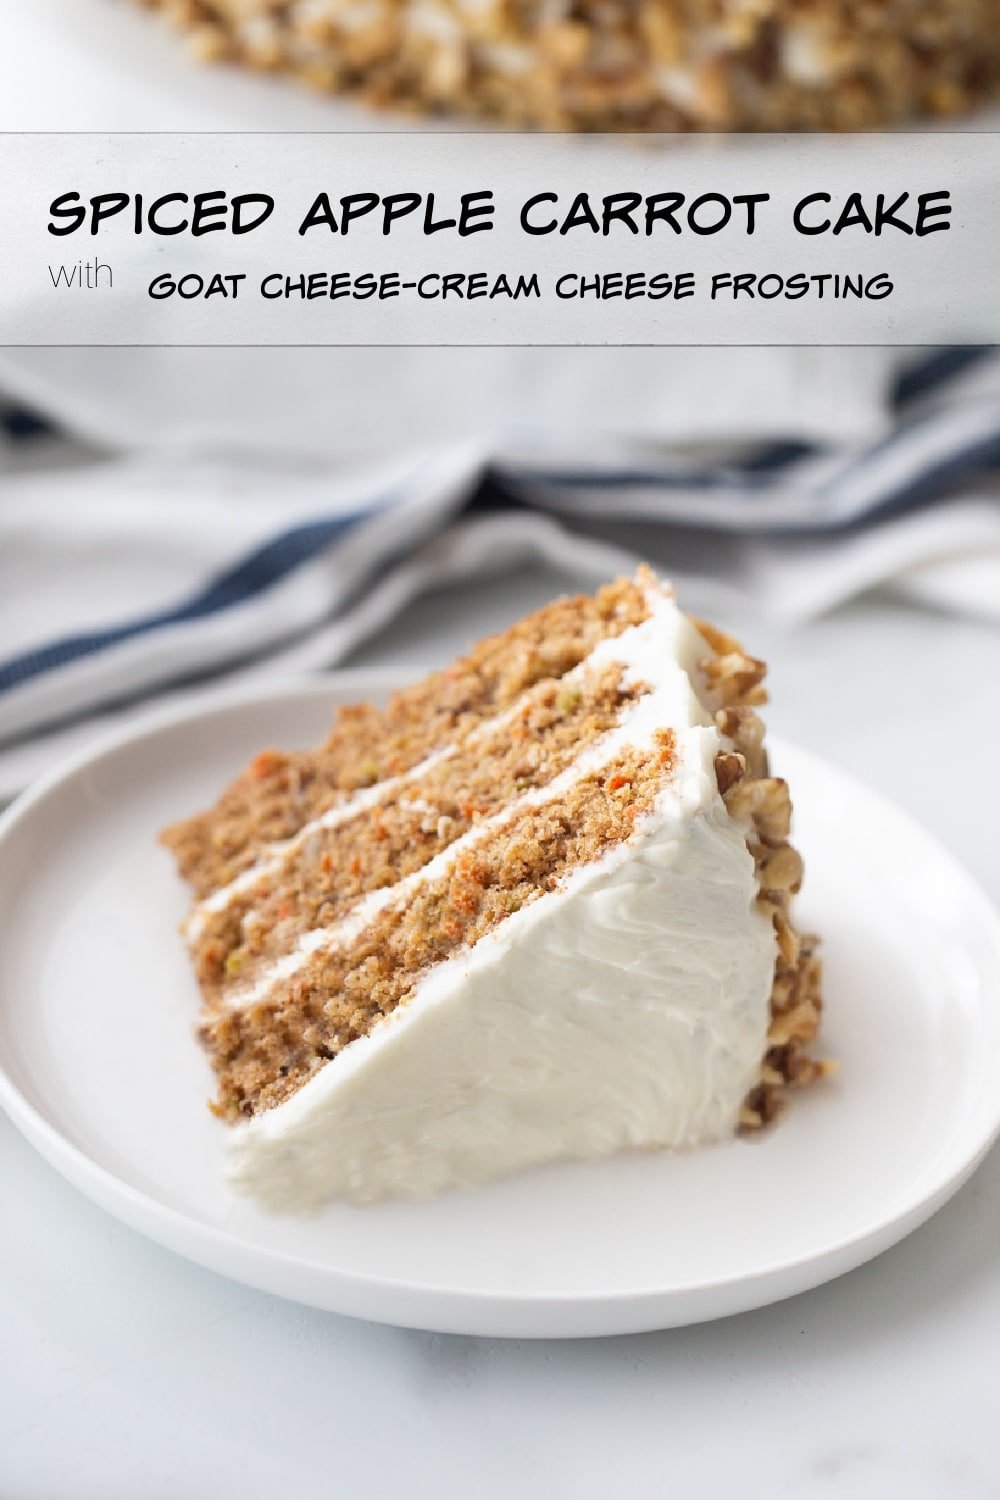 A spiced carrot cake that is not too sweet and packed full of shredded carrots and apples, making it the most tender and distinctly cake-like cake you might ever enjoy. The goat cheese-cream cheese frosting just makes it better. via @cmpollak1